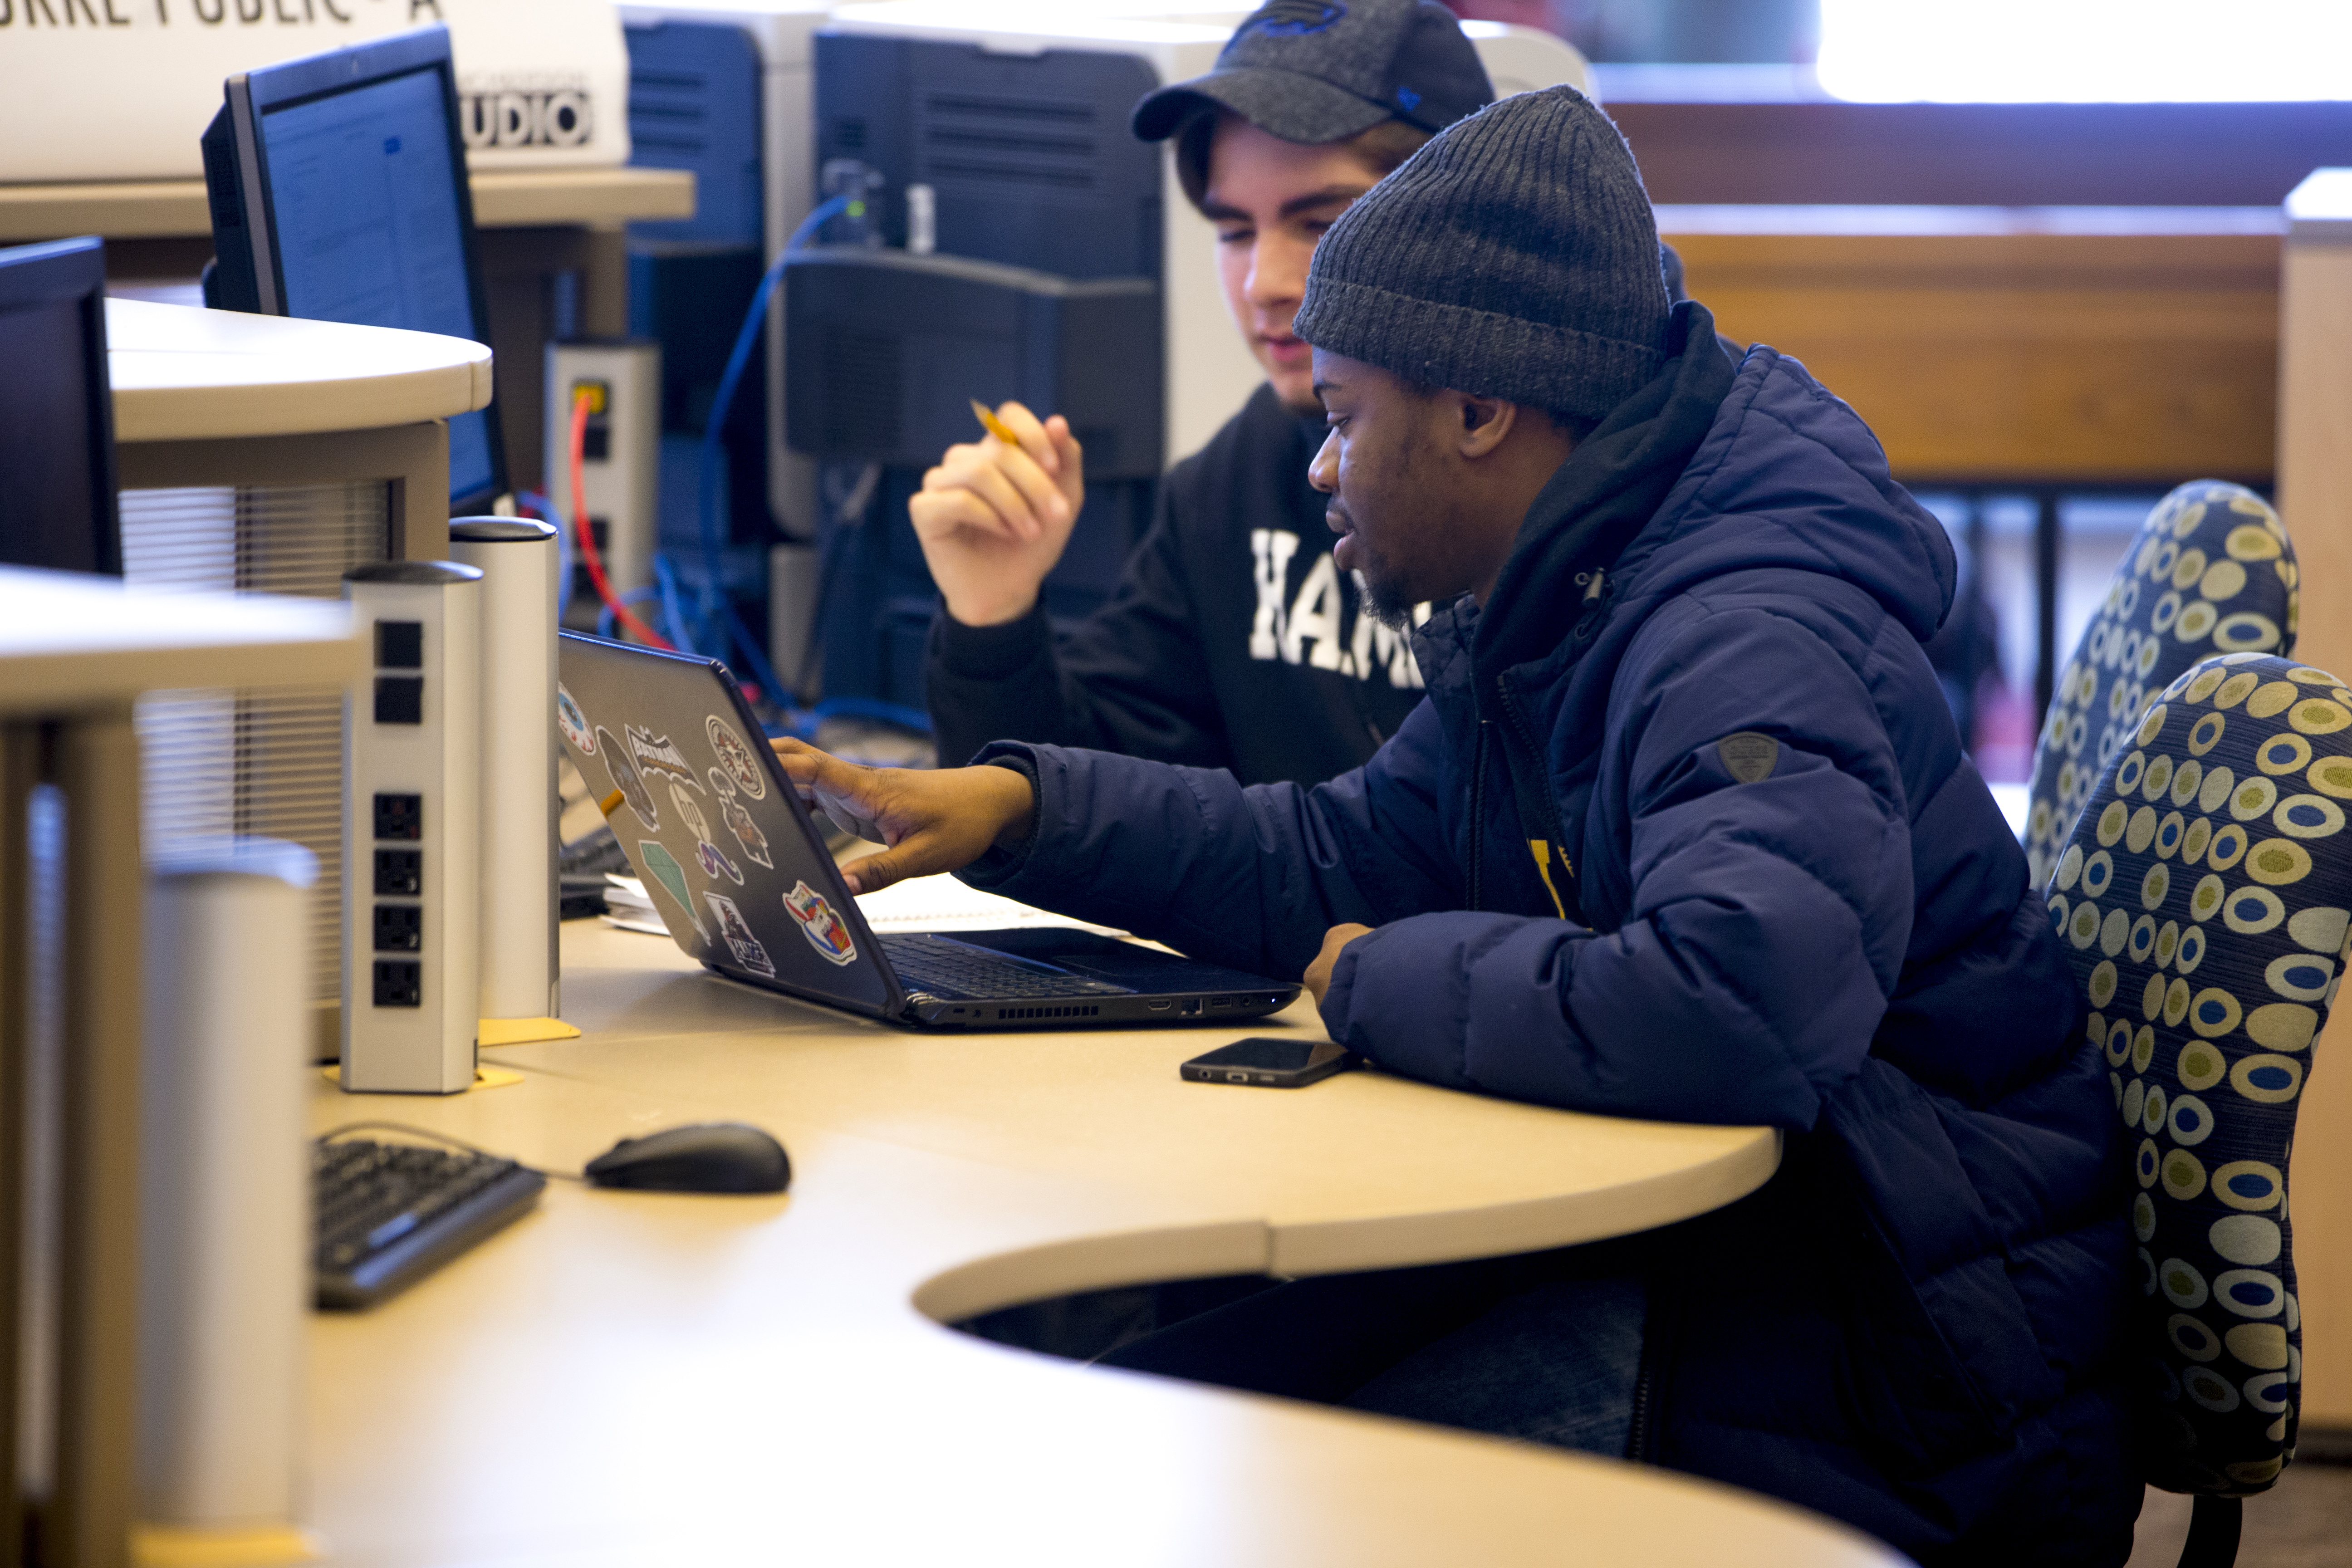 Two students studying together at a computer station in the library. One is pointing to something on their laptop screen while the other looks on.